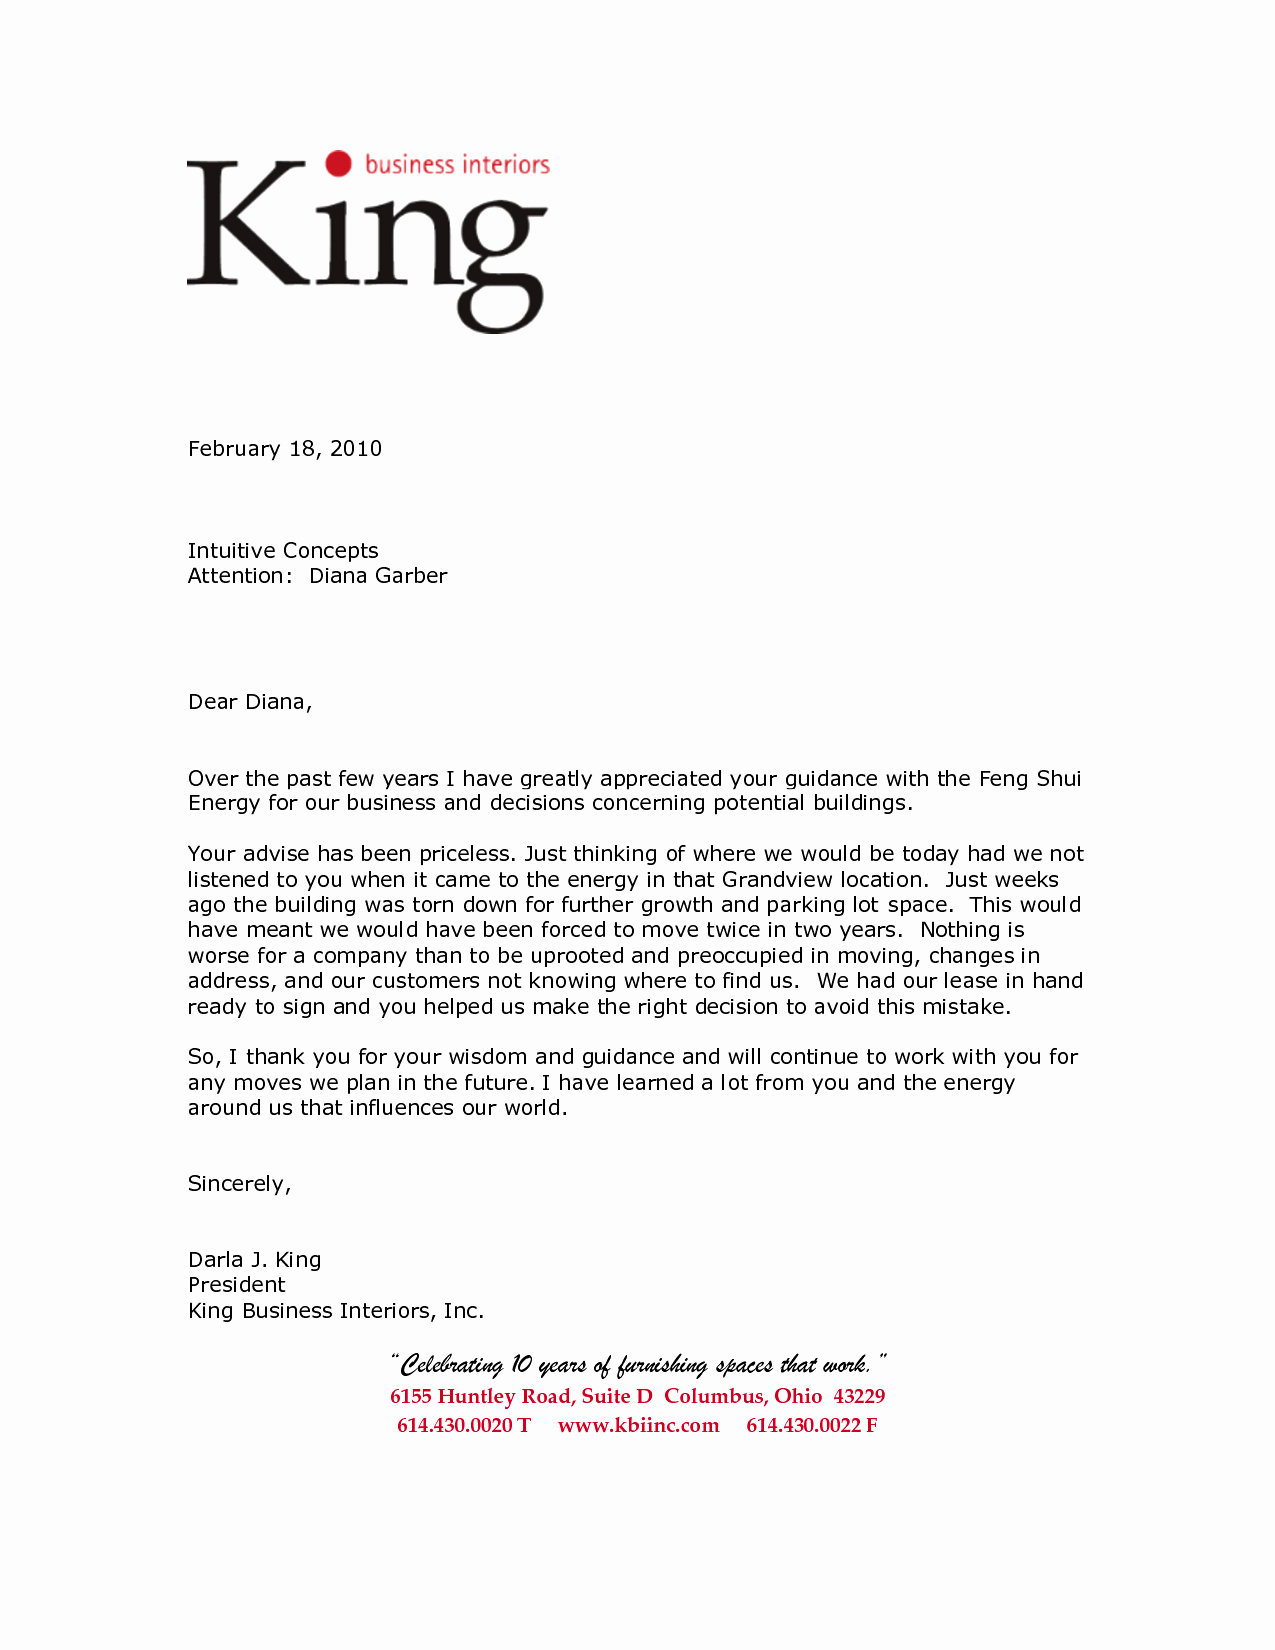 Sample Professional Letter Of Recommendation Unique Business Reference Letter Template Mughals